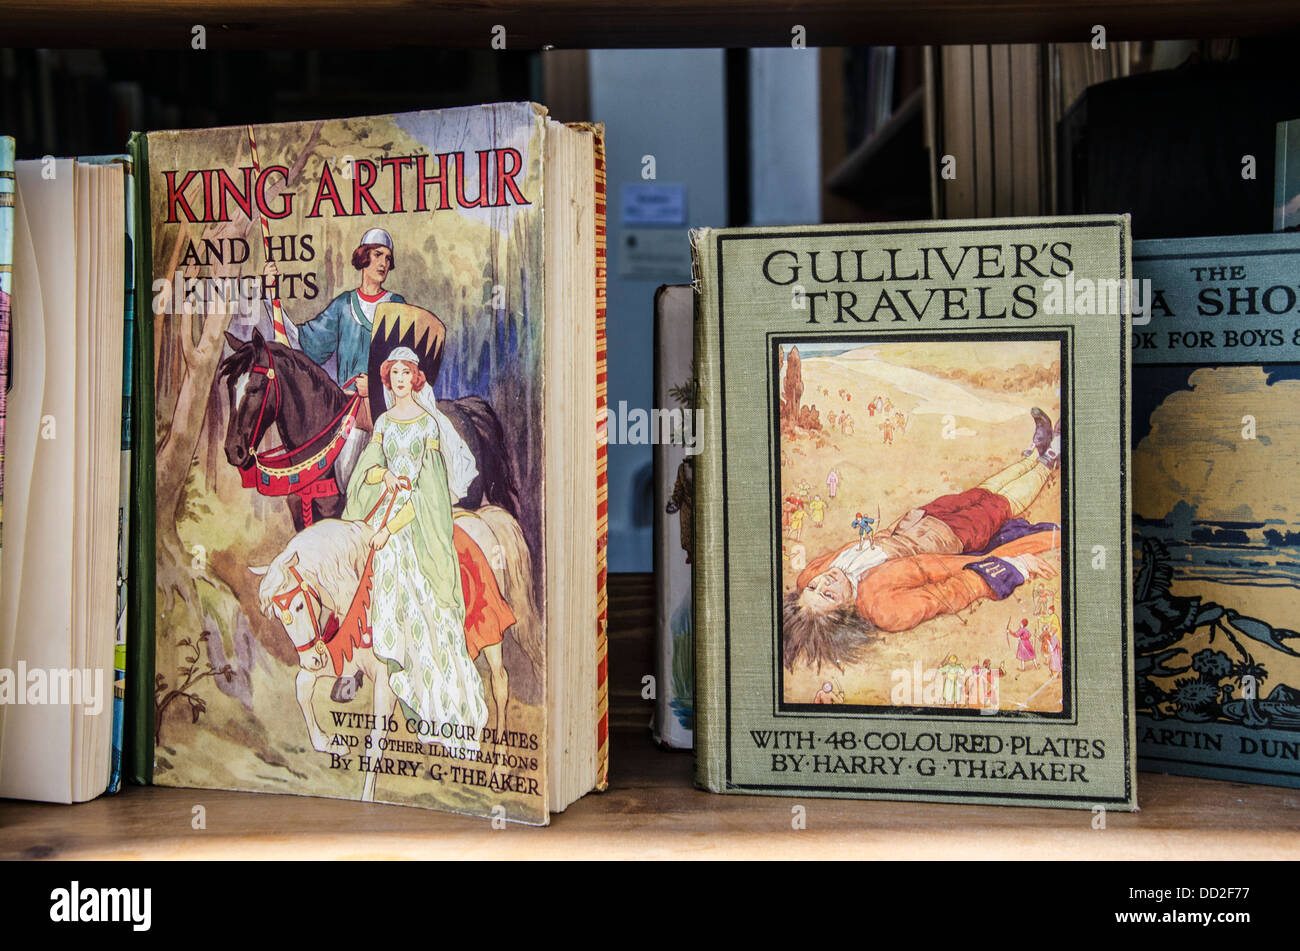 Vintage copies of 'Gulliver's Travels' and 'King Arthur and His Knights' in a secondhand bookshop. - Stock Image